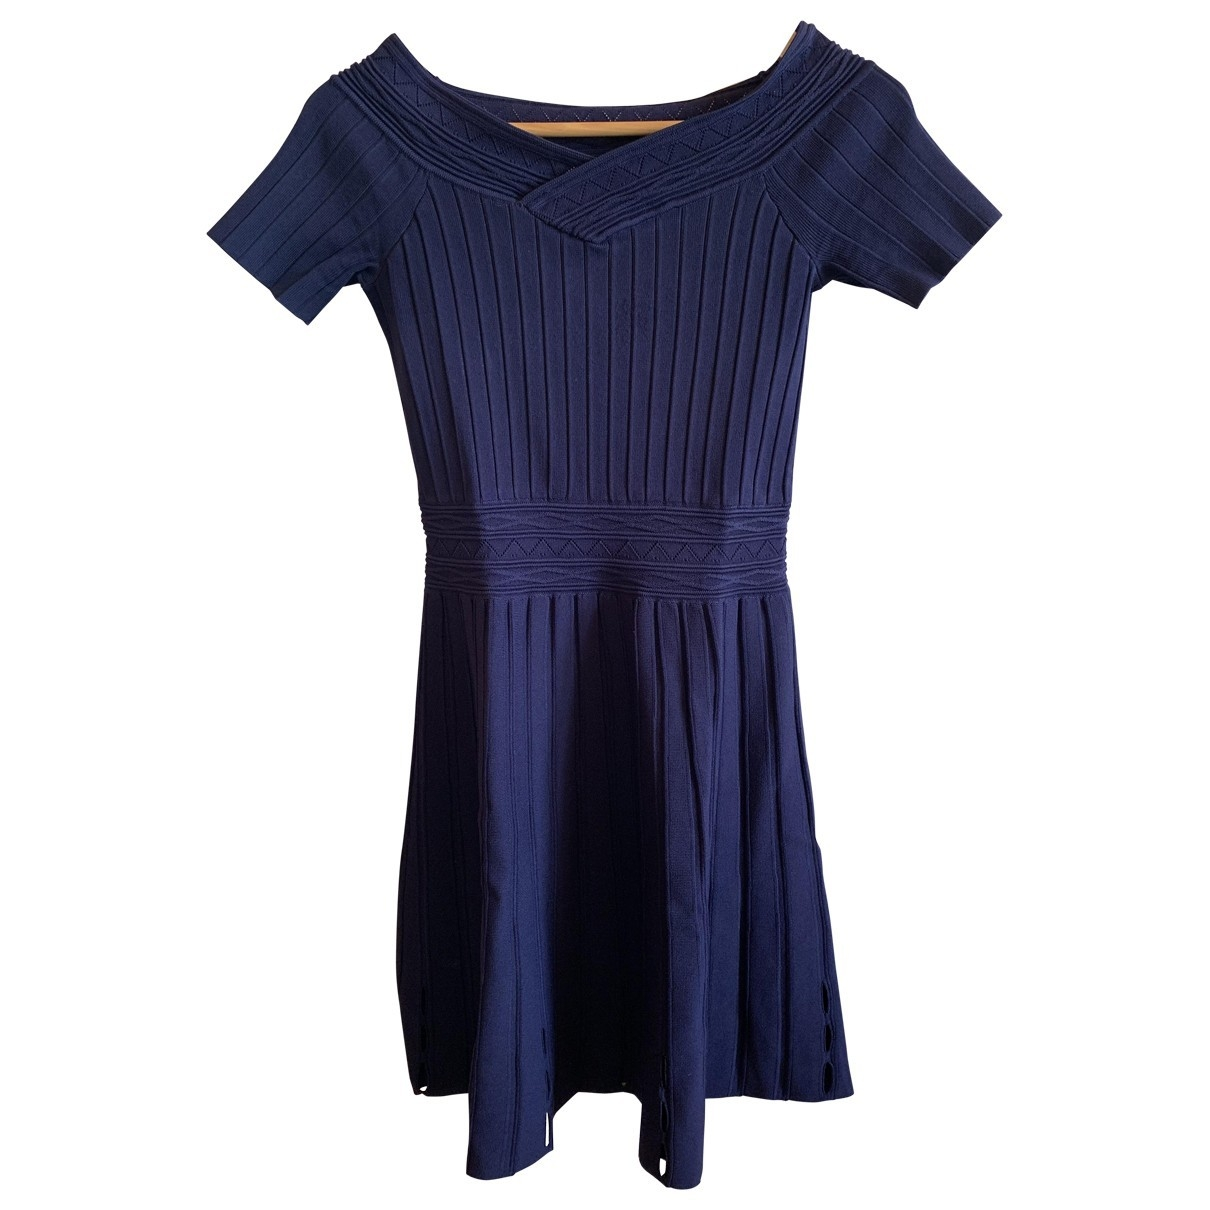 Sandro \N Blue Cotton dress for Women 36 FR